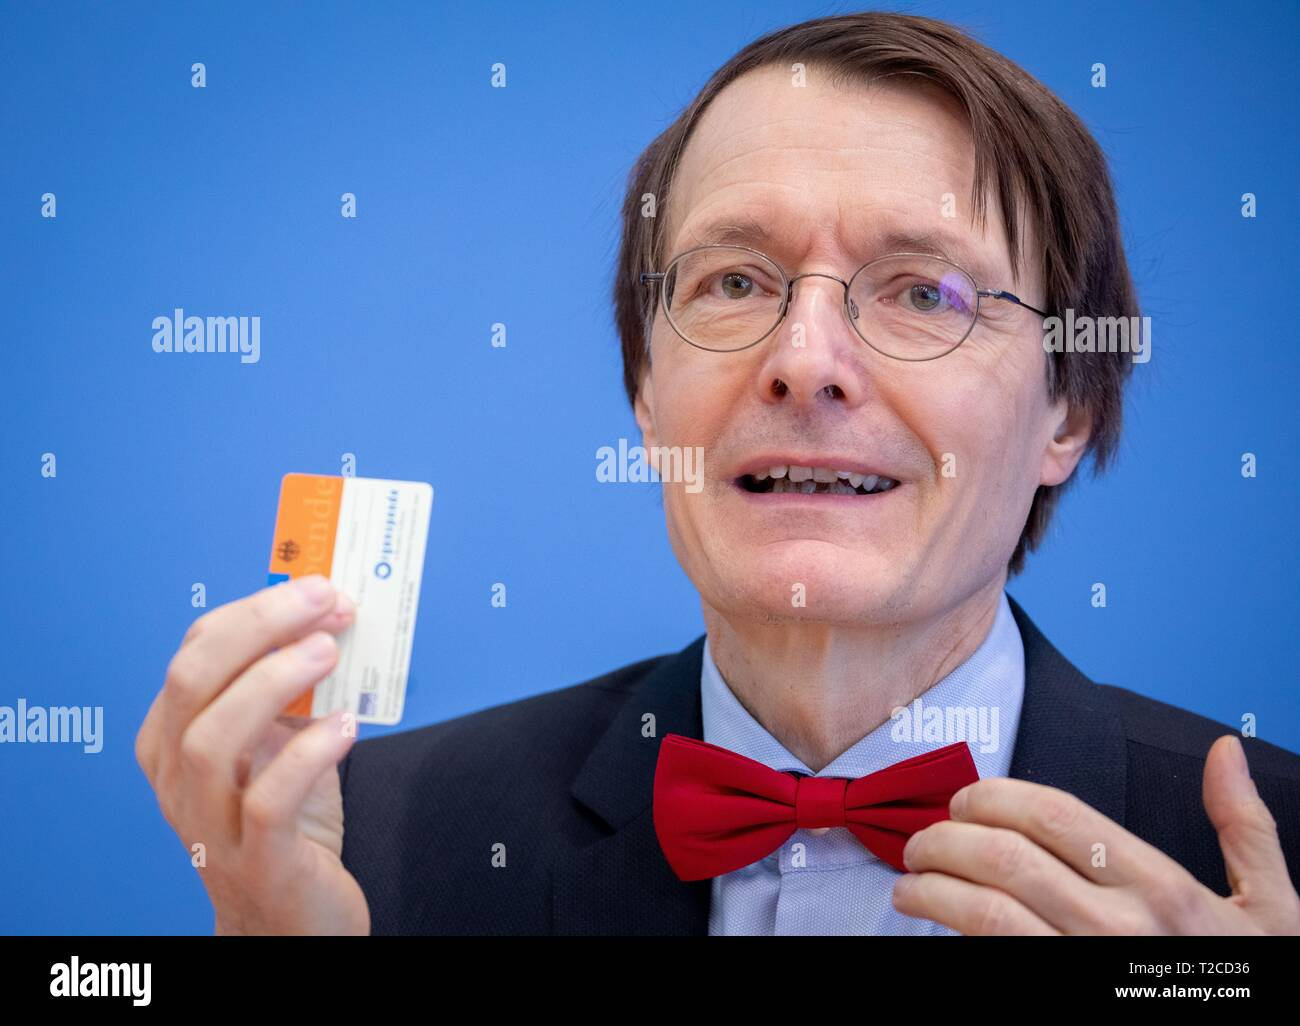 Berlin, Germany. 01st Apr, 2019. Karl Lauterbach, deputy chairman of the SPD parliamentary group and health expert of his party, will present an organ donation card at the federal press conference during the presentation of the new organ donation rules. MEPs propose a draft 'double opposition solution'. Credit: Kay Nietfeld/dpa/Alamy Live News - Stock Image